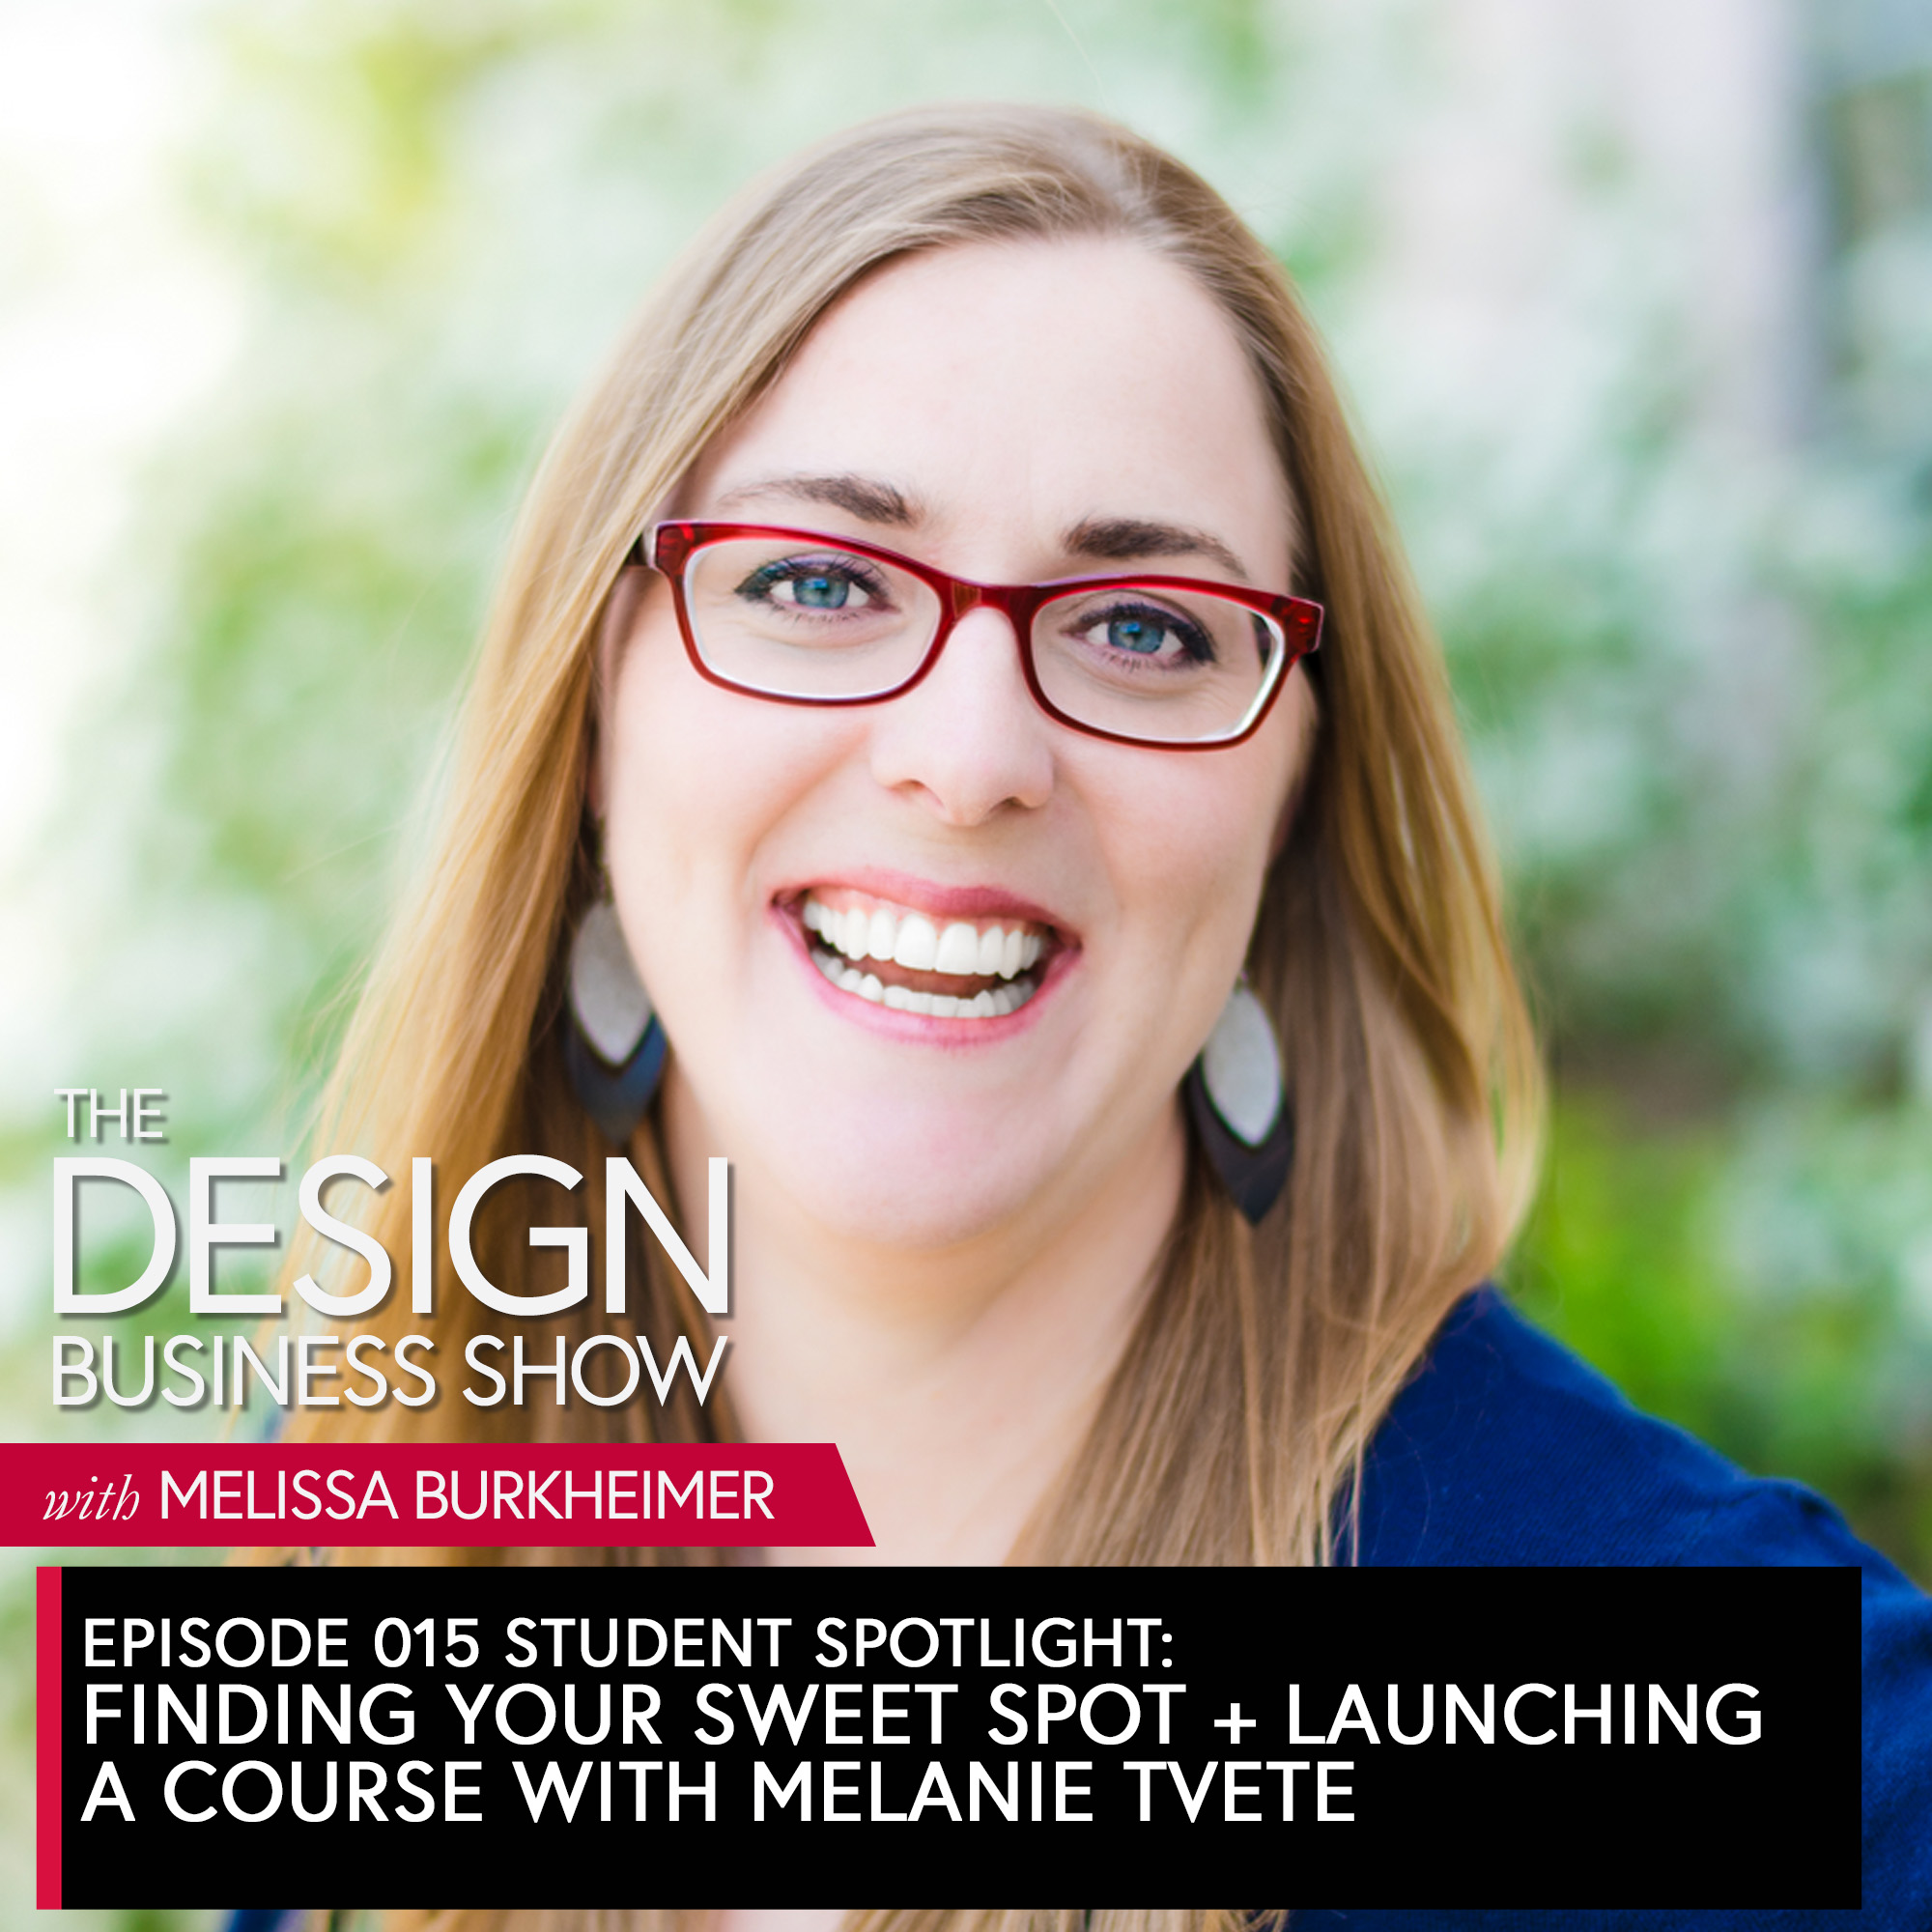 Learn how Melanie Tvete found her sweet spot and launched her first course.